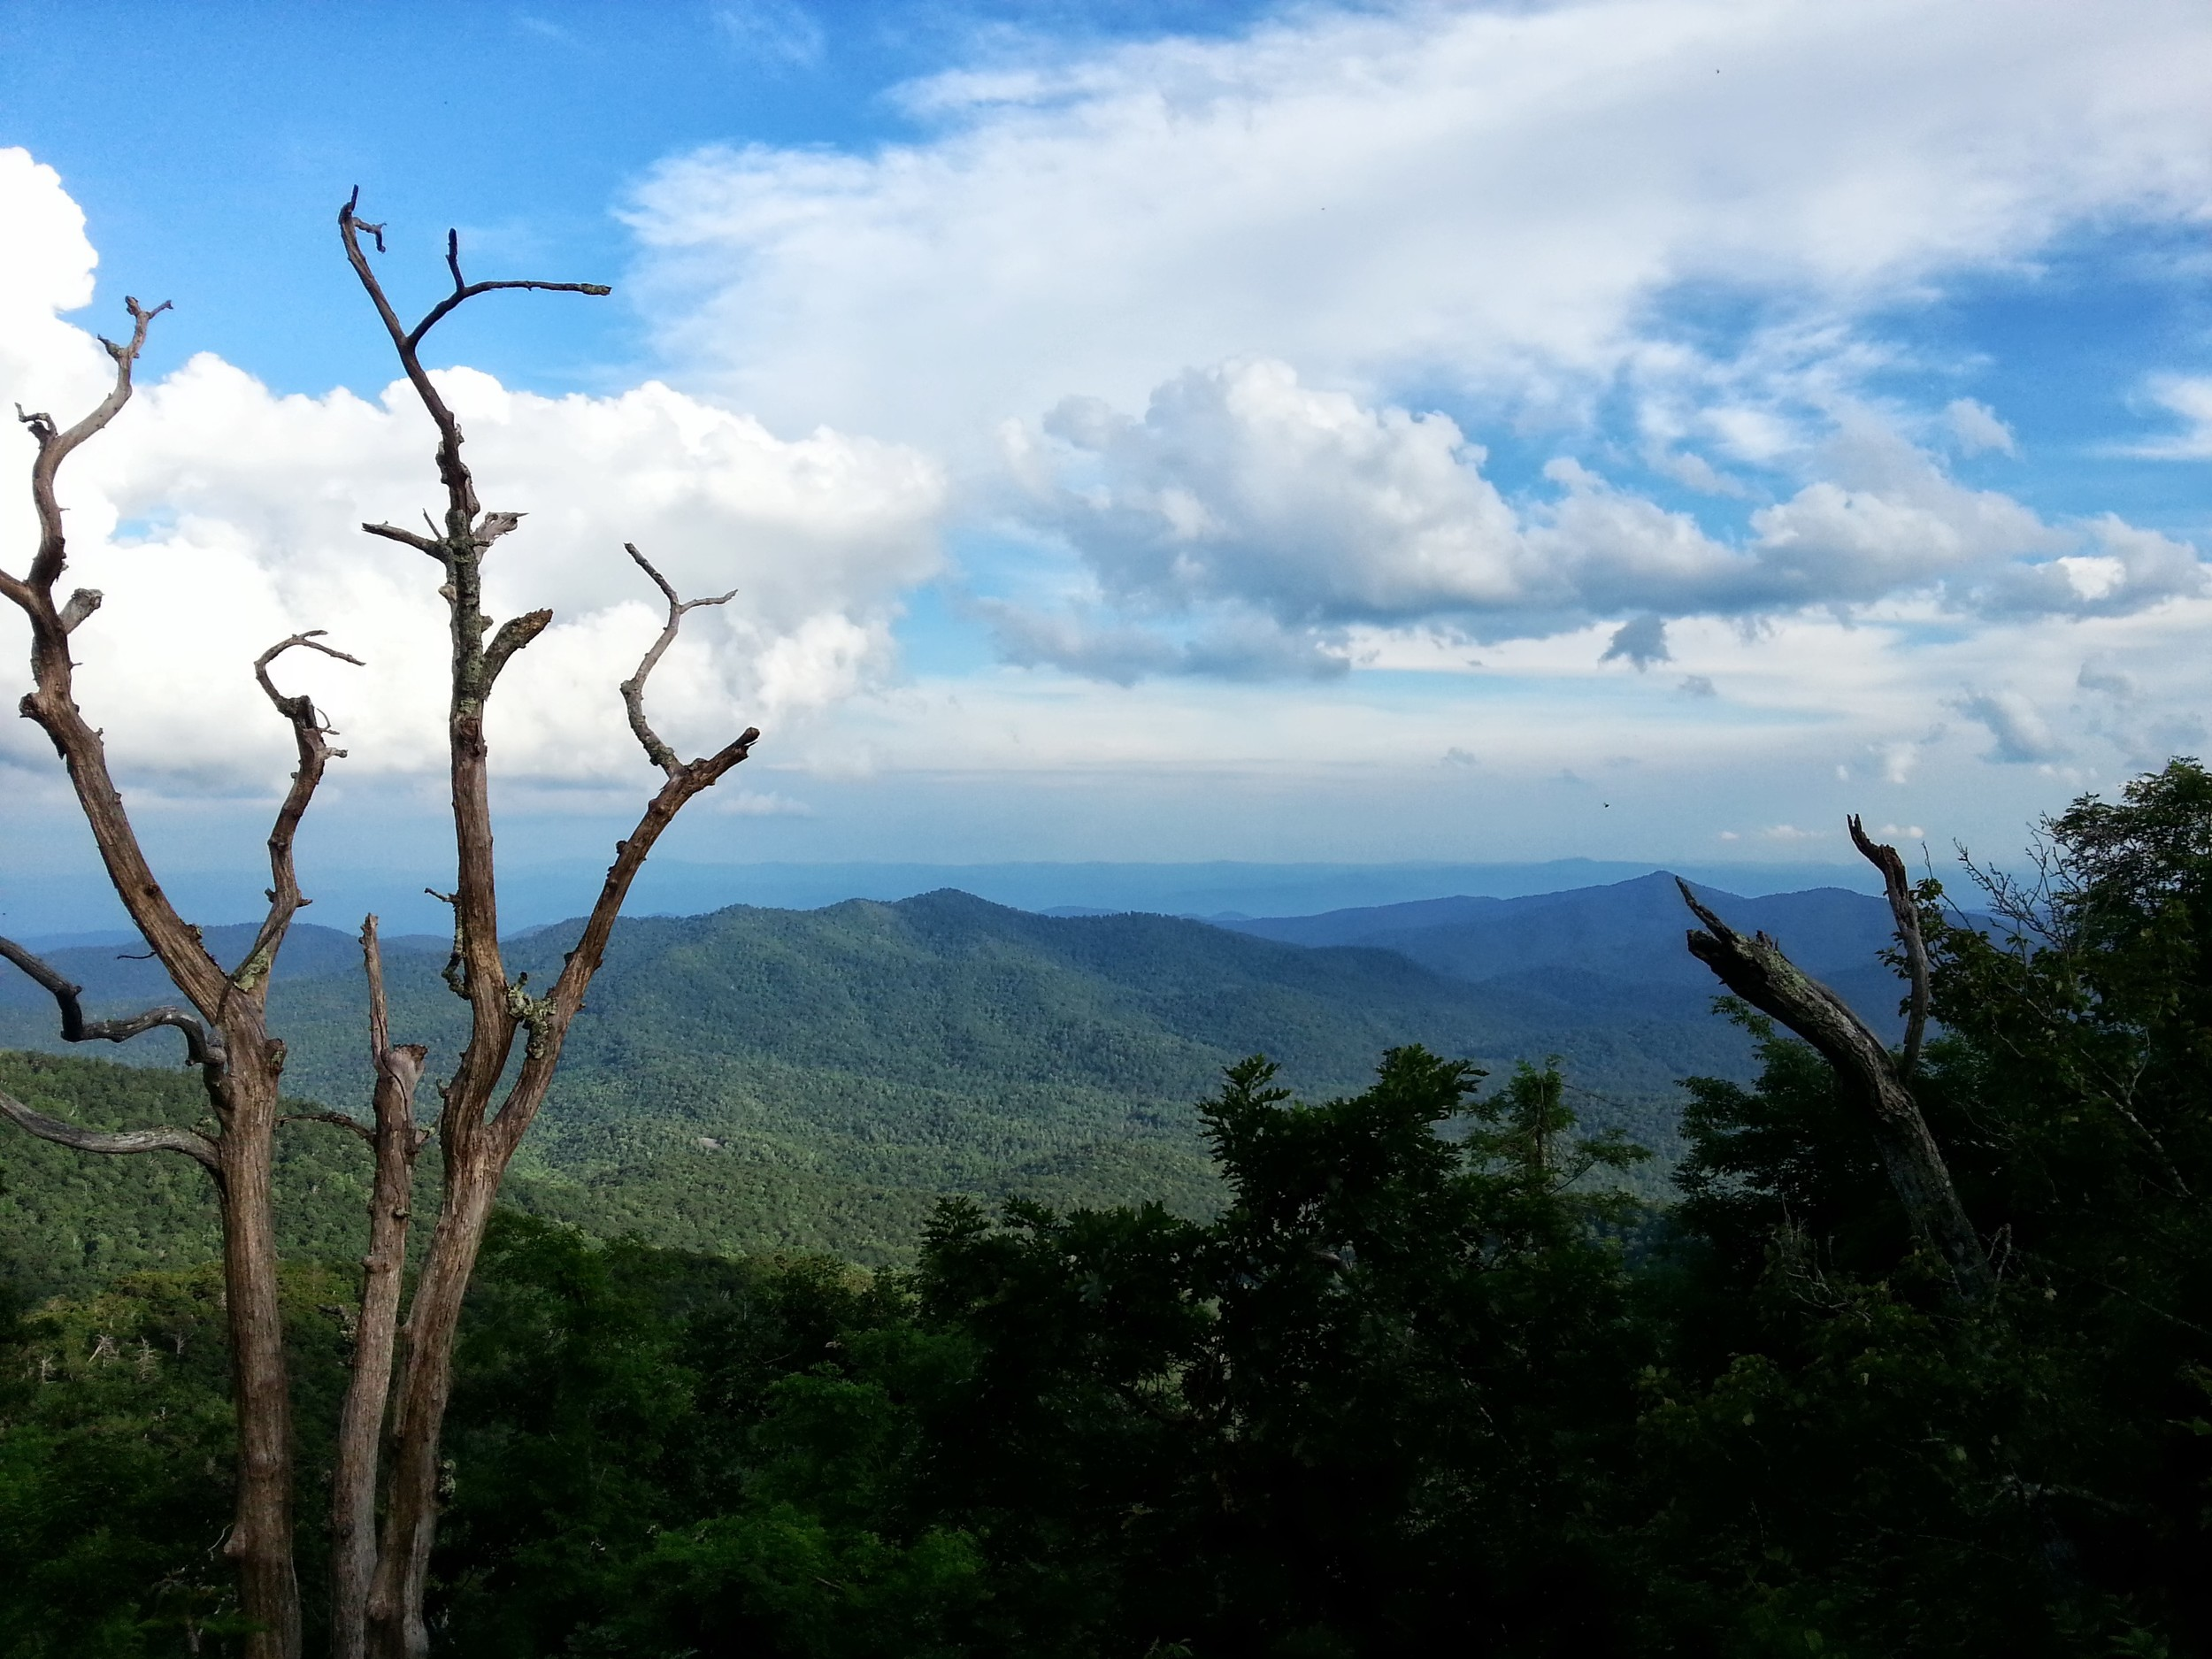 Vantage point from Mt. Pisgah Inn and Country Store area